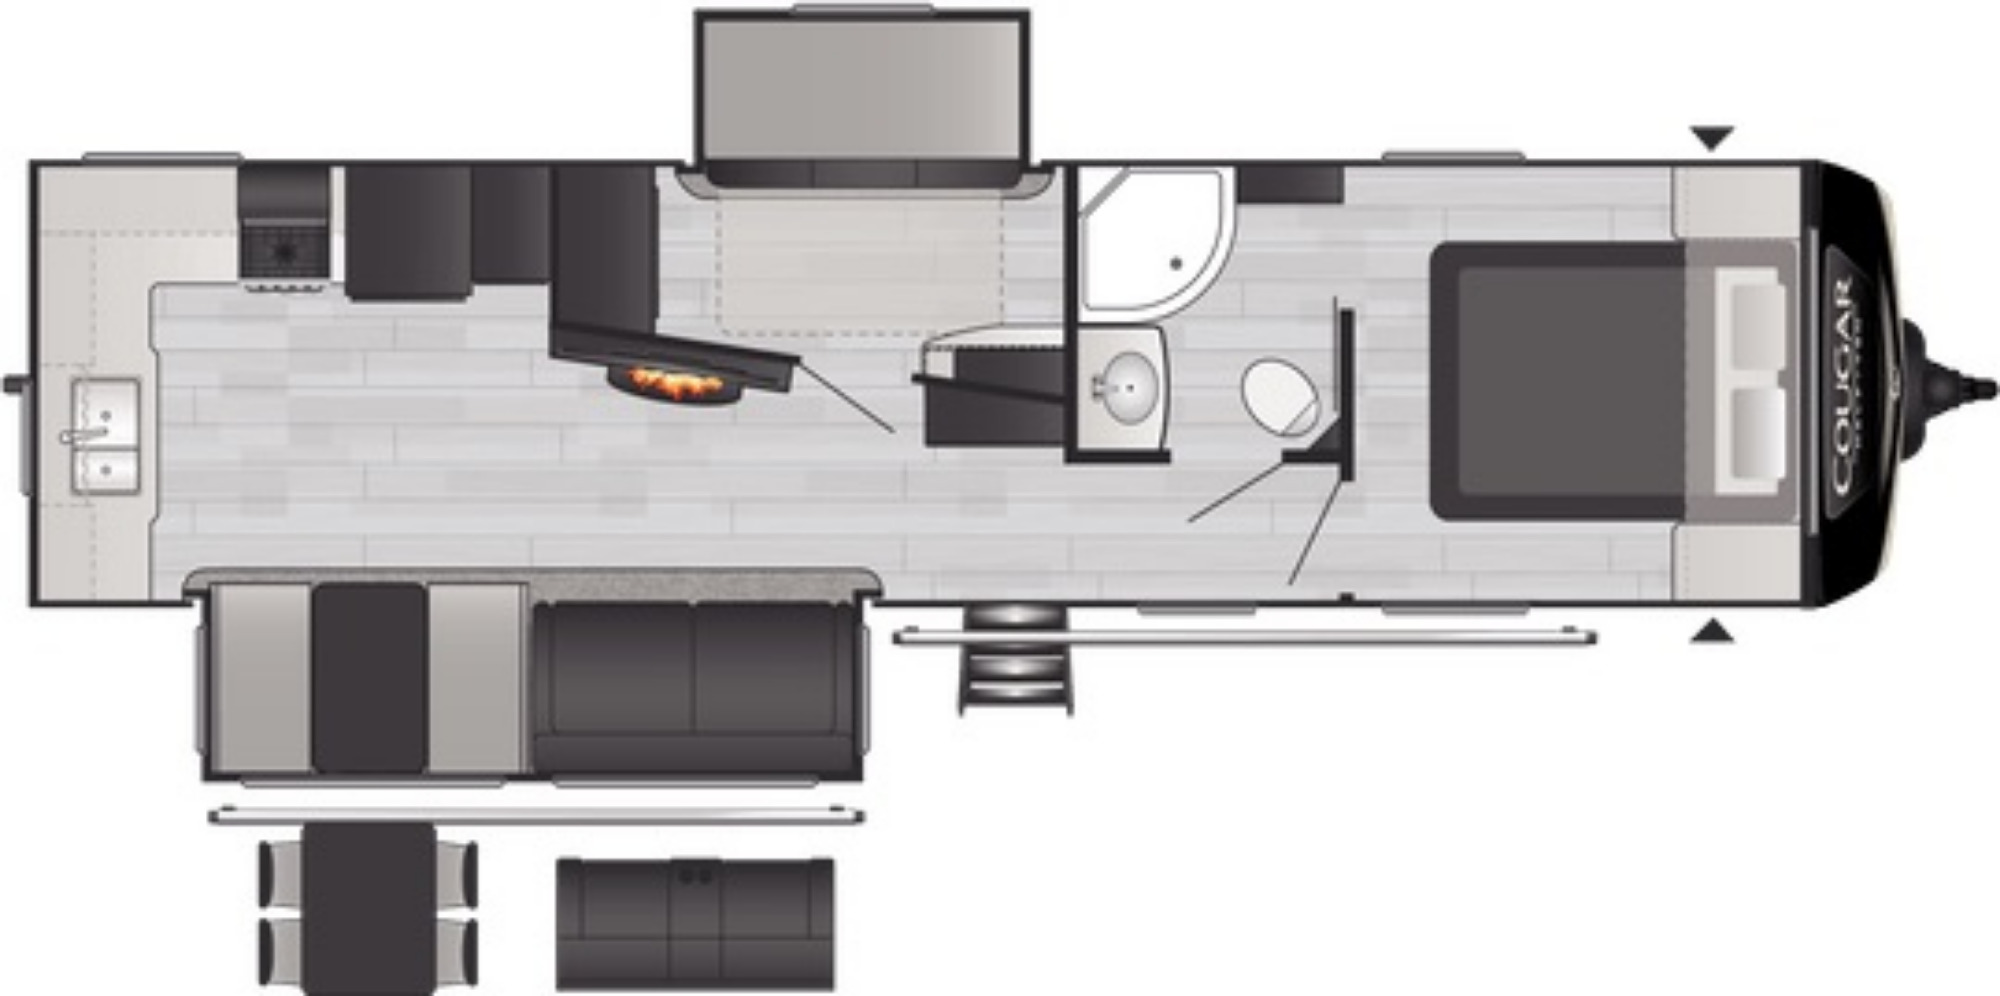 View Floor Plan for 2021 KEYSTONE COUGAR 31MBS